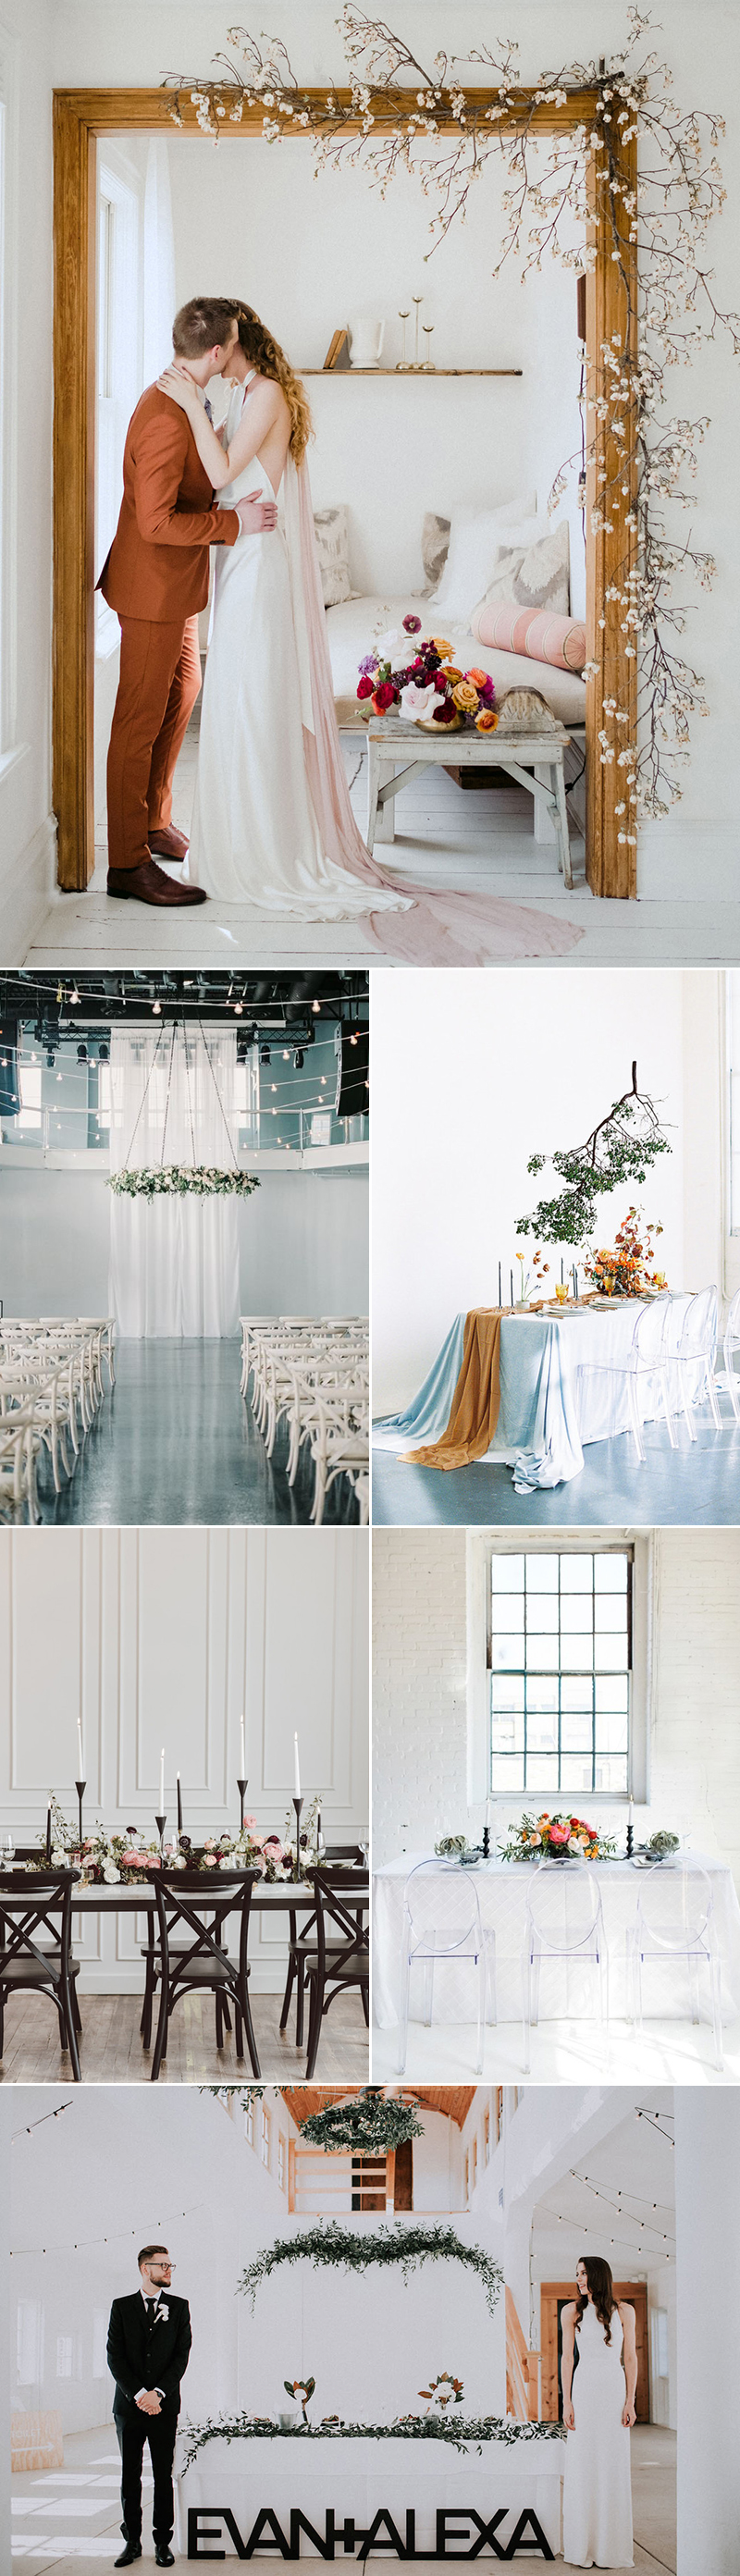 minimalist wedding theme